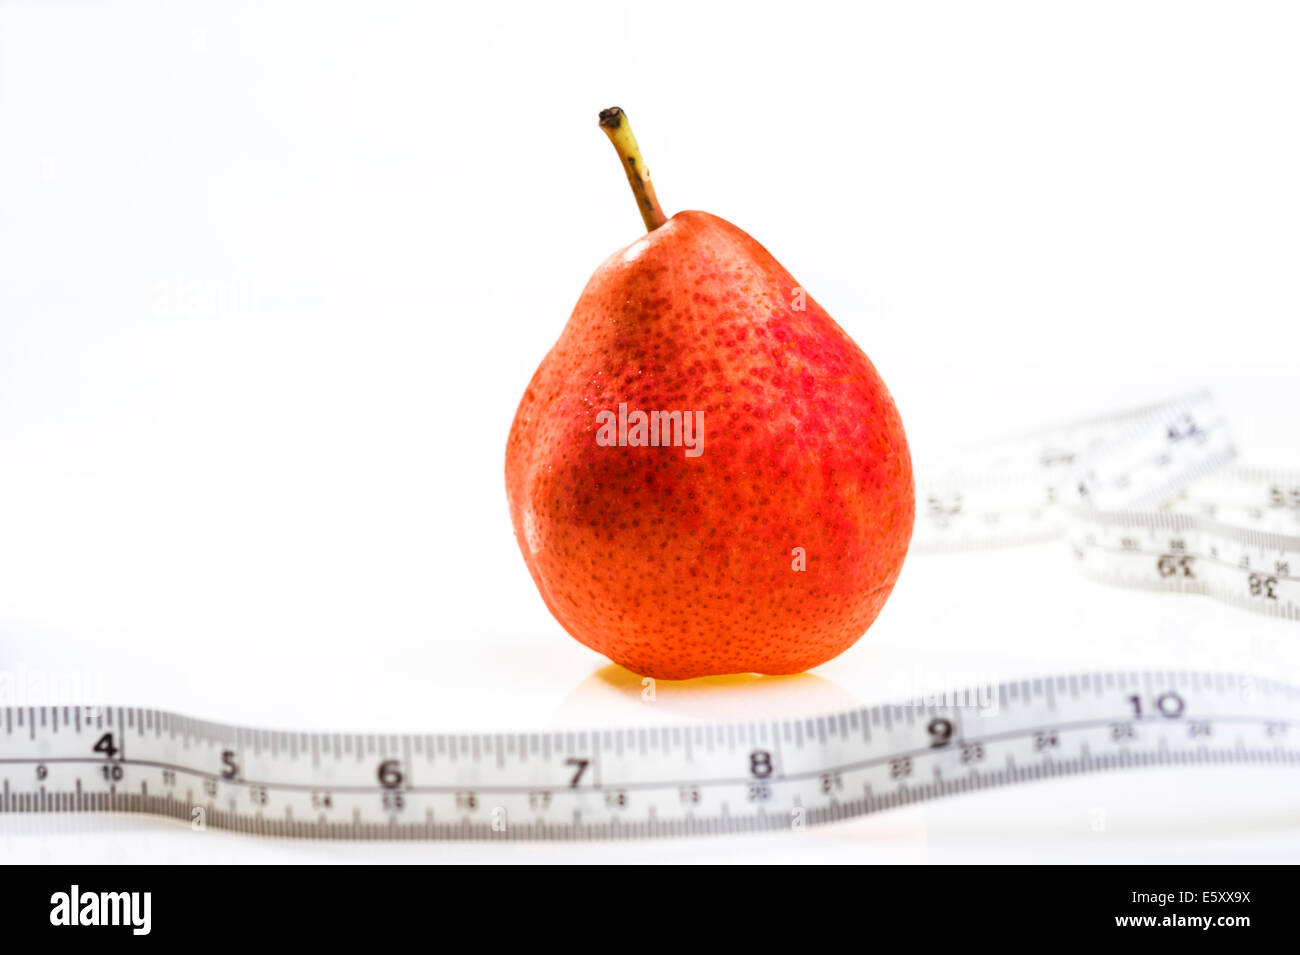 Red pear with tape measure.obesity, weight loss, dieting. - Stock Image